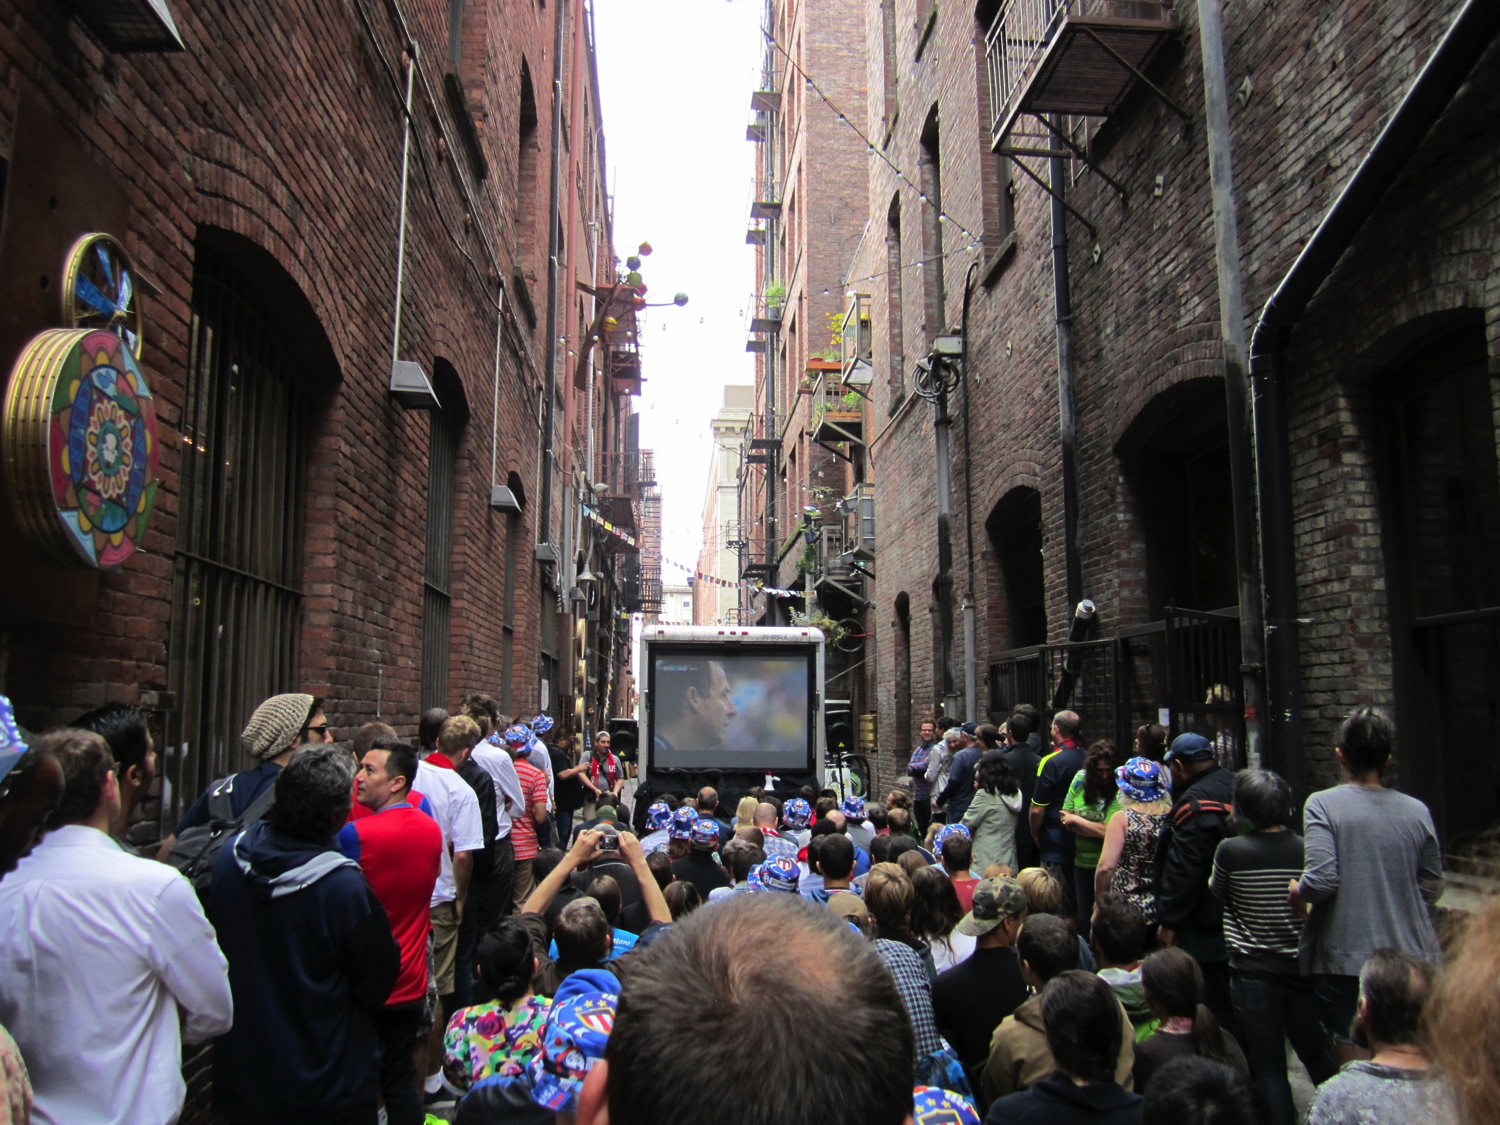 USA-GER at Nord Alley by SounderBruce via Flickr (CC BY-SA 2.0)